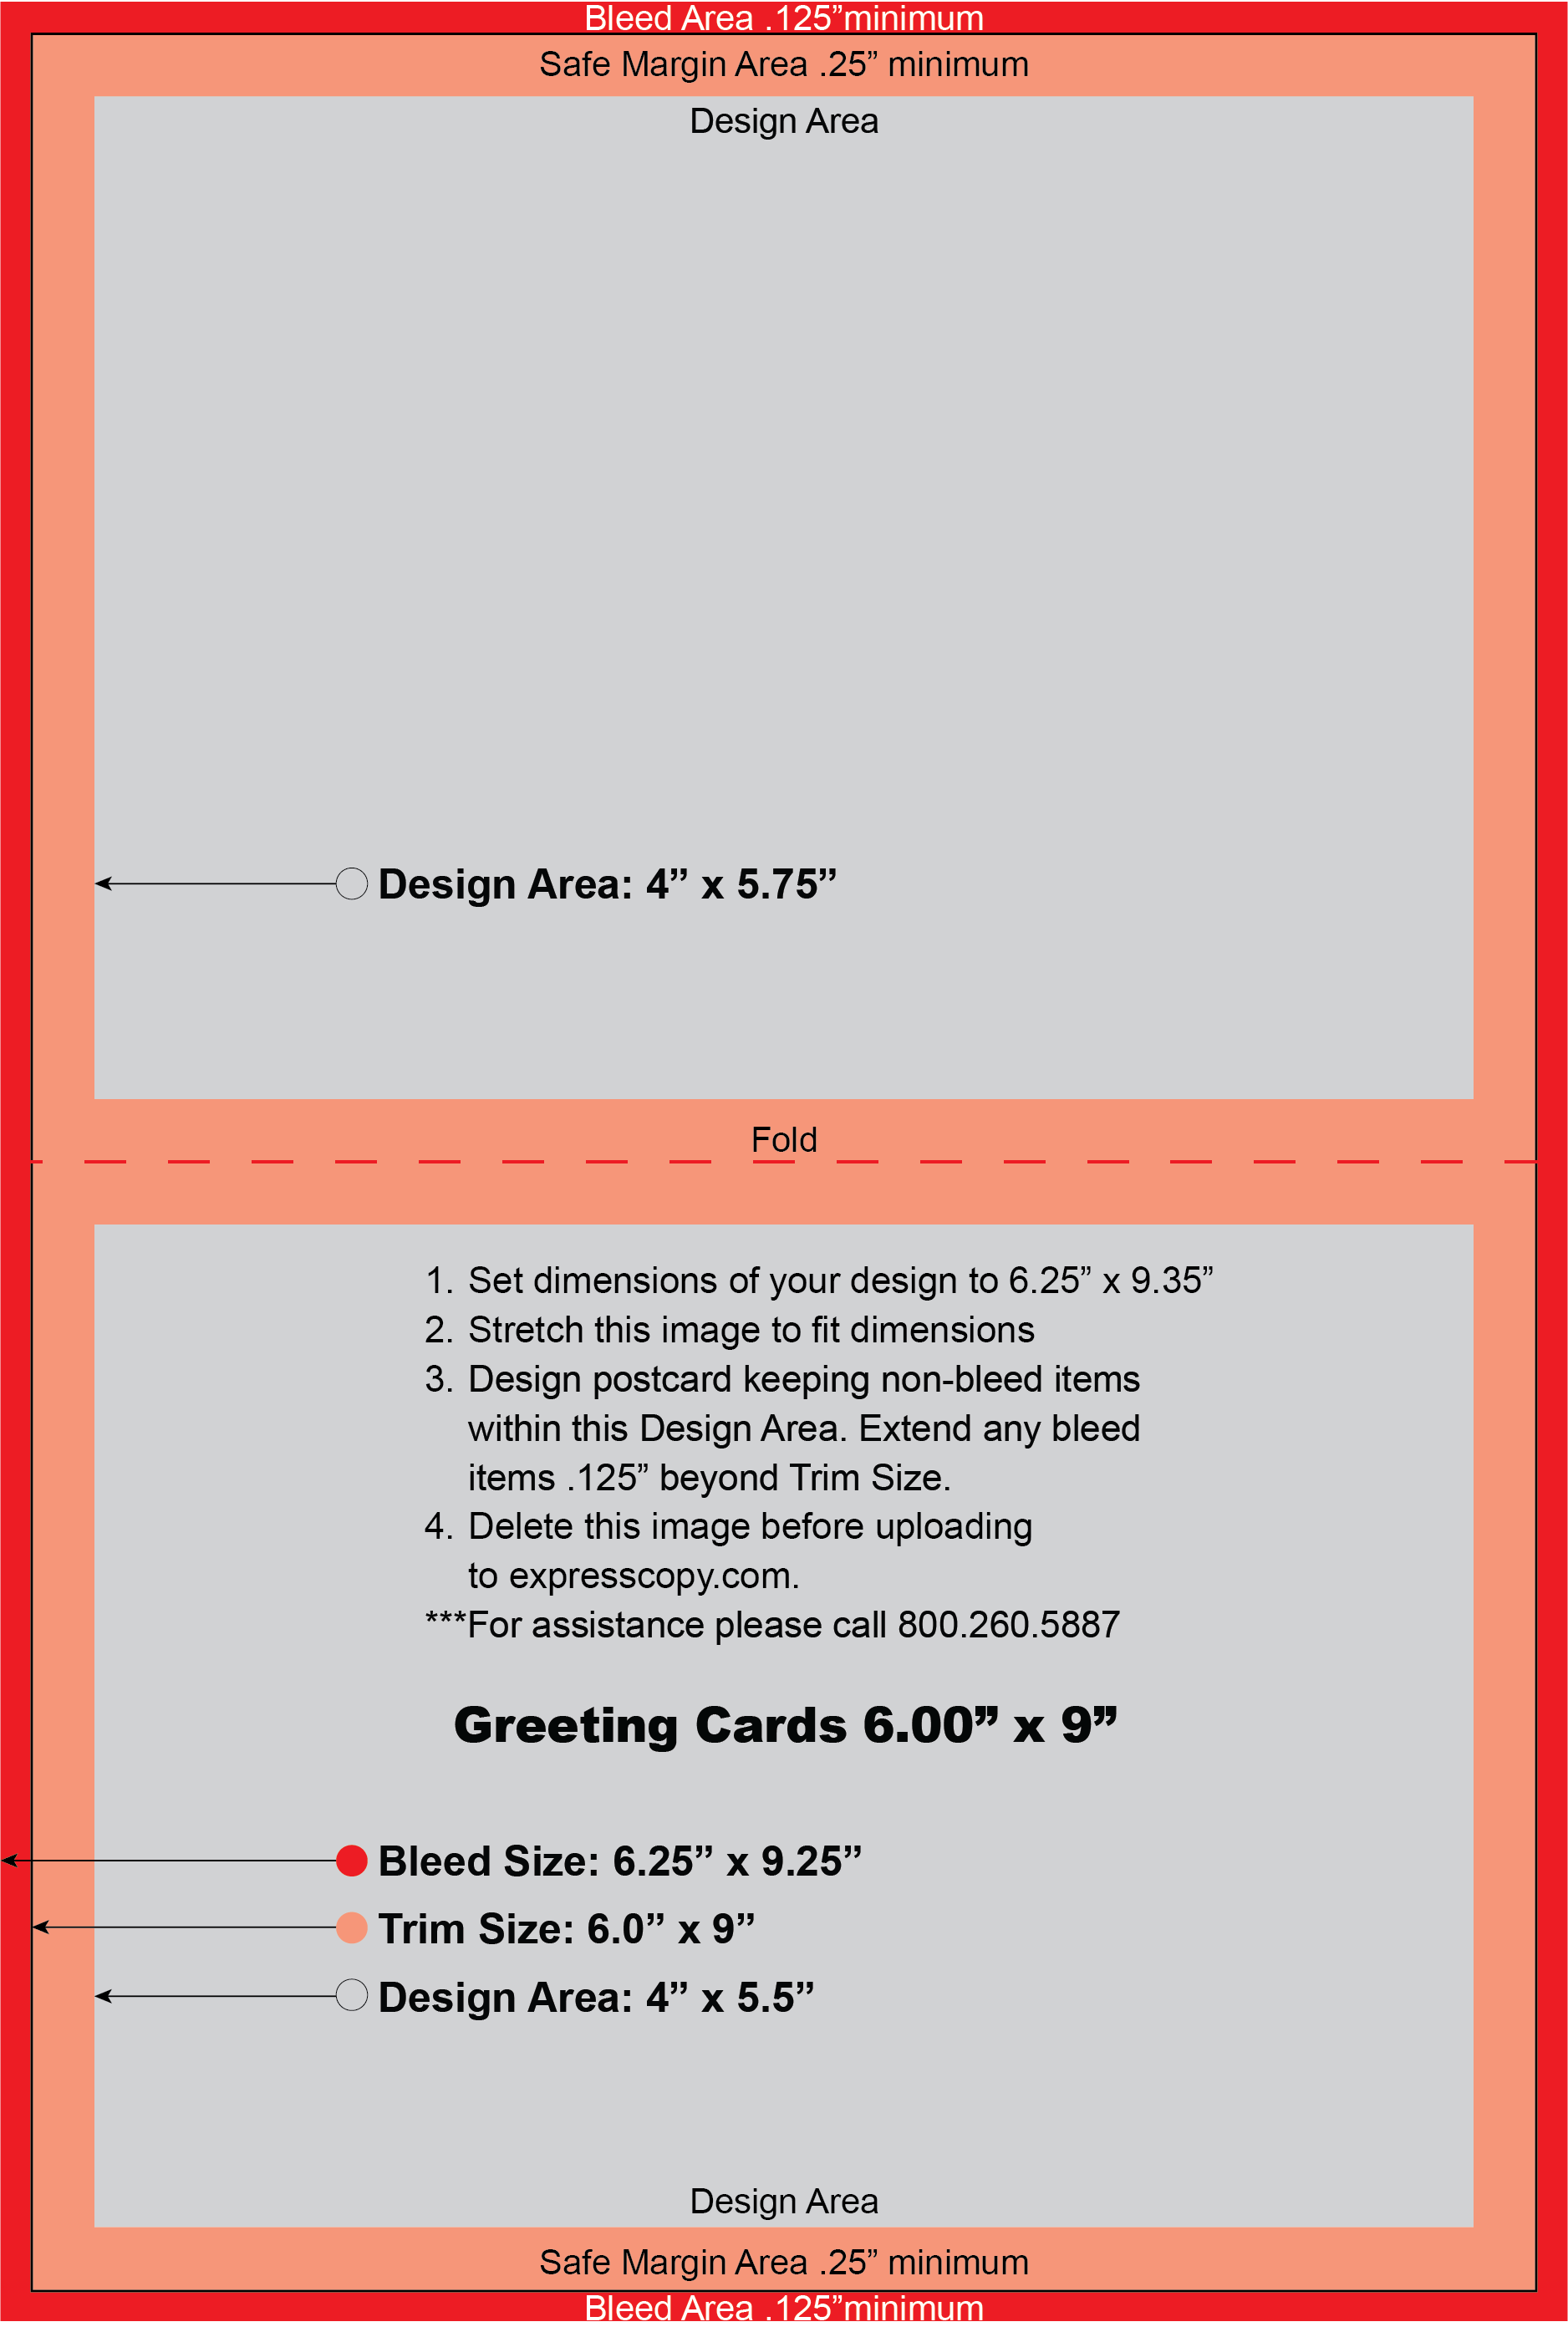 Greeting Card Design Specifications